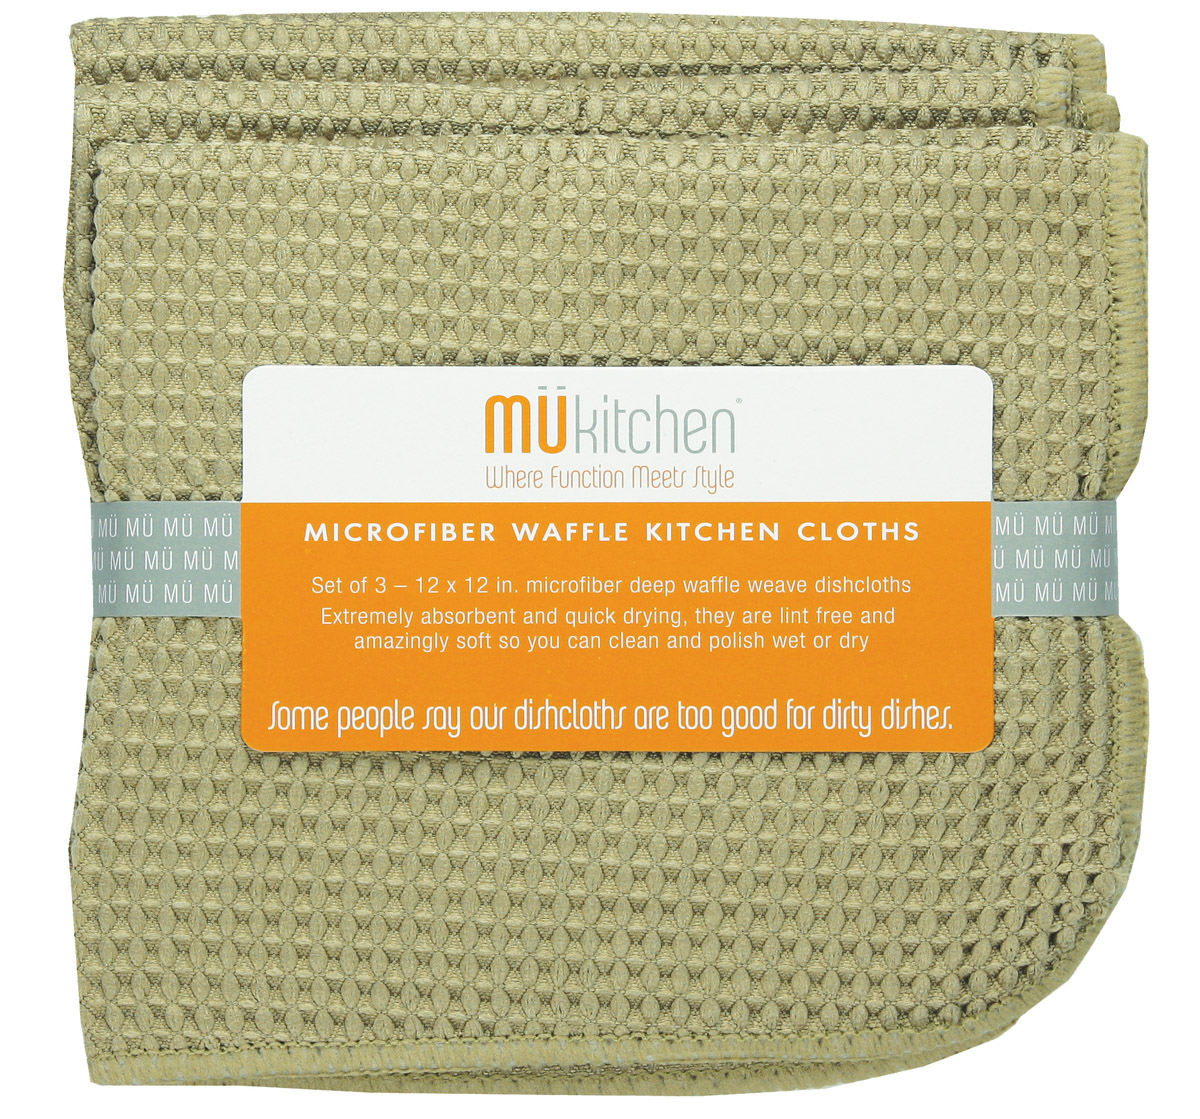 MUkitchen Microfiber Waffle Dishcloth 12 by 12-Inches Set of 3 Pebble